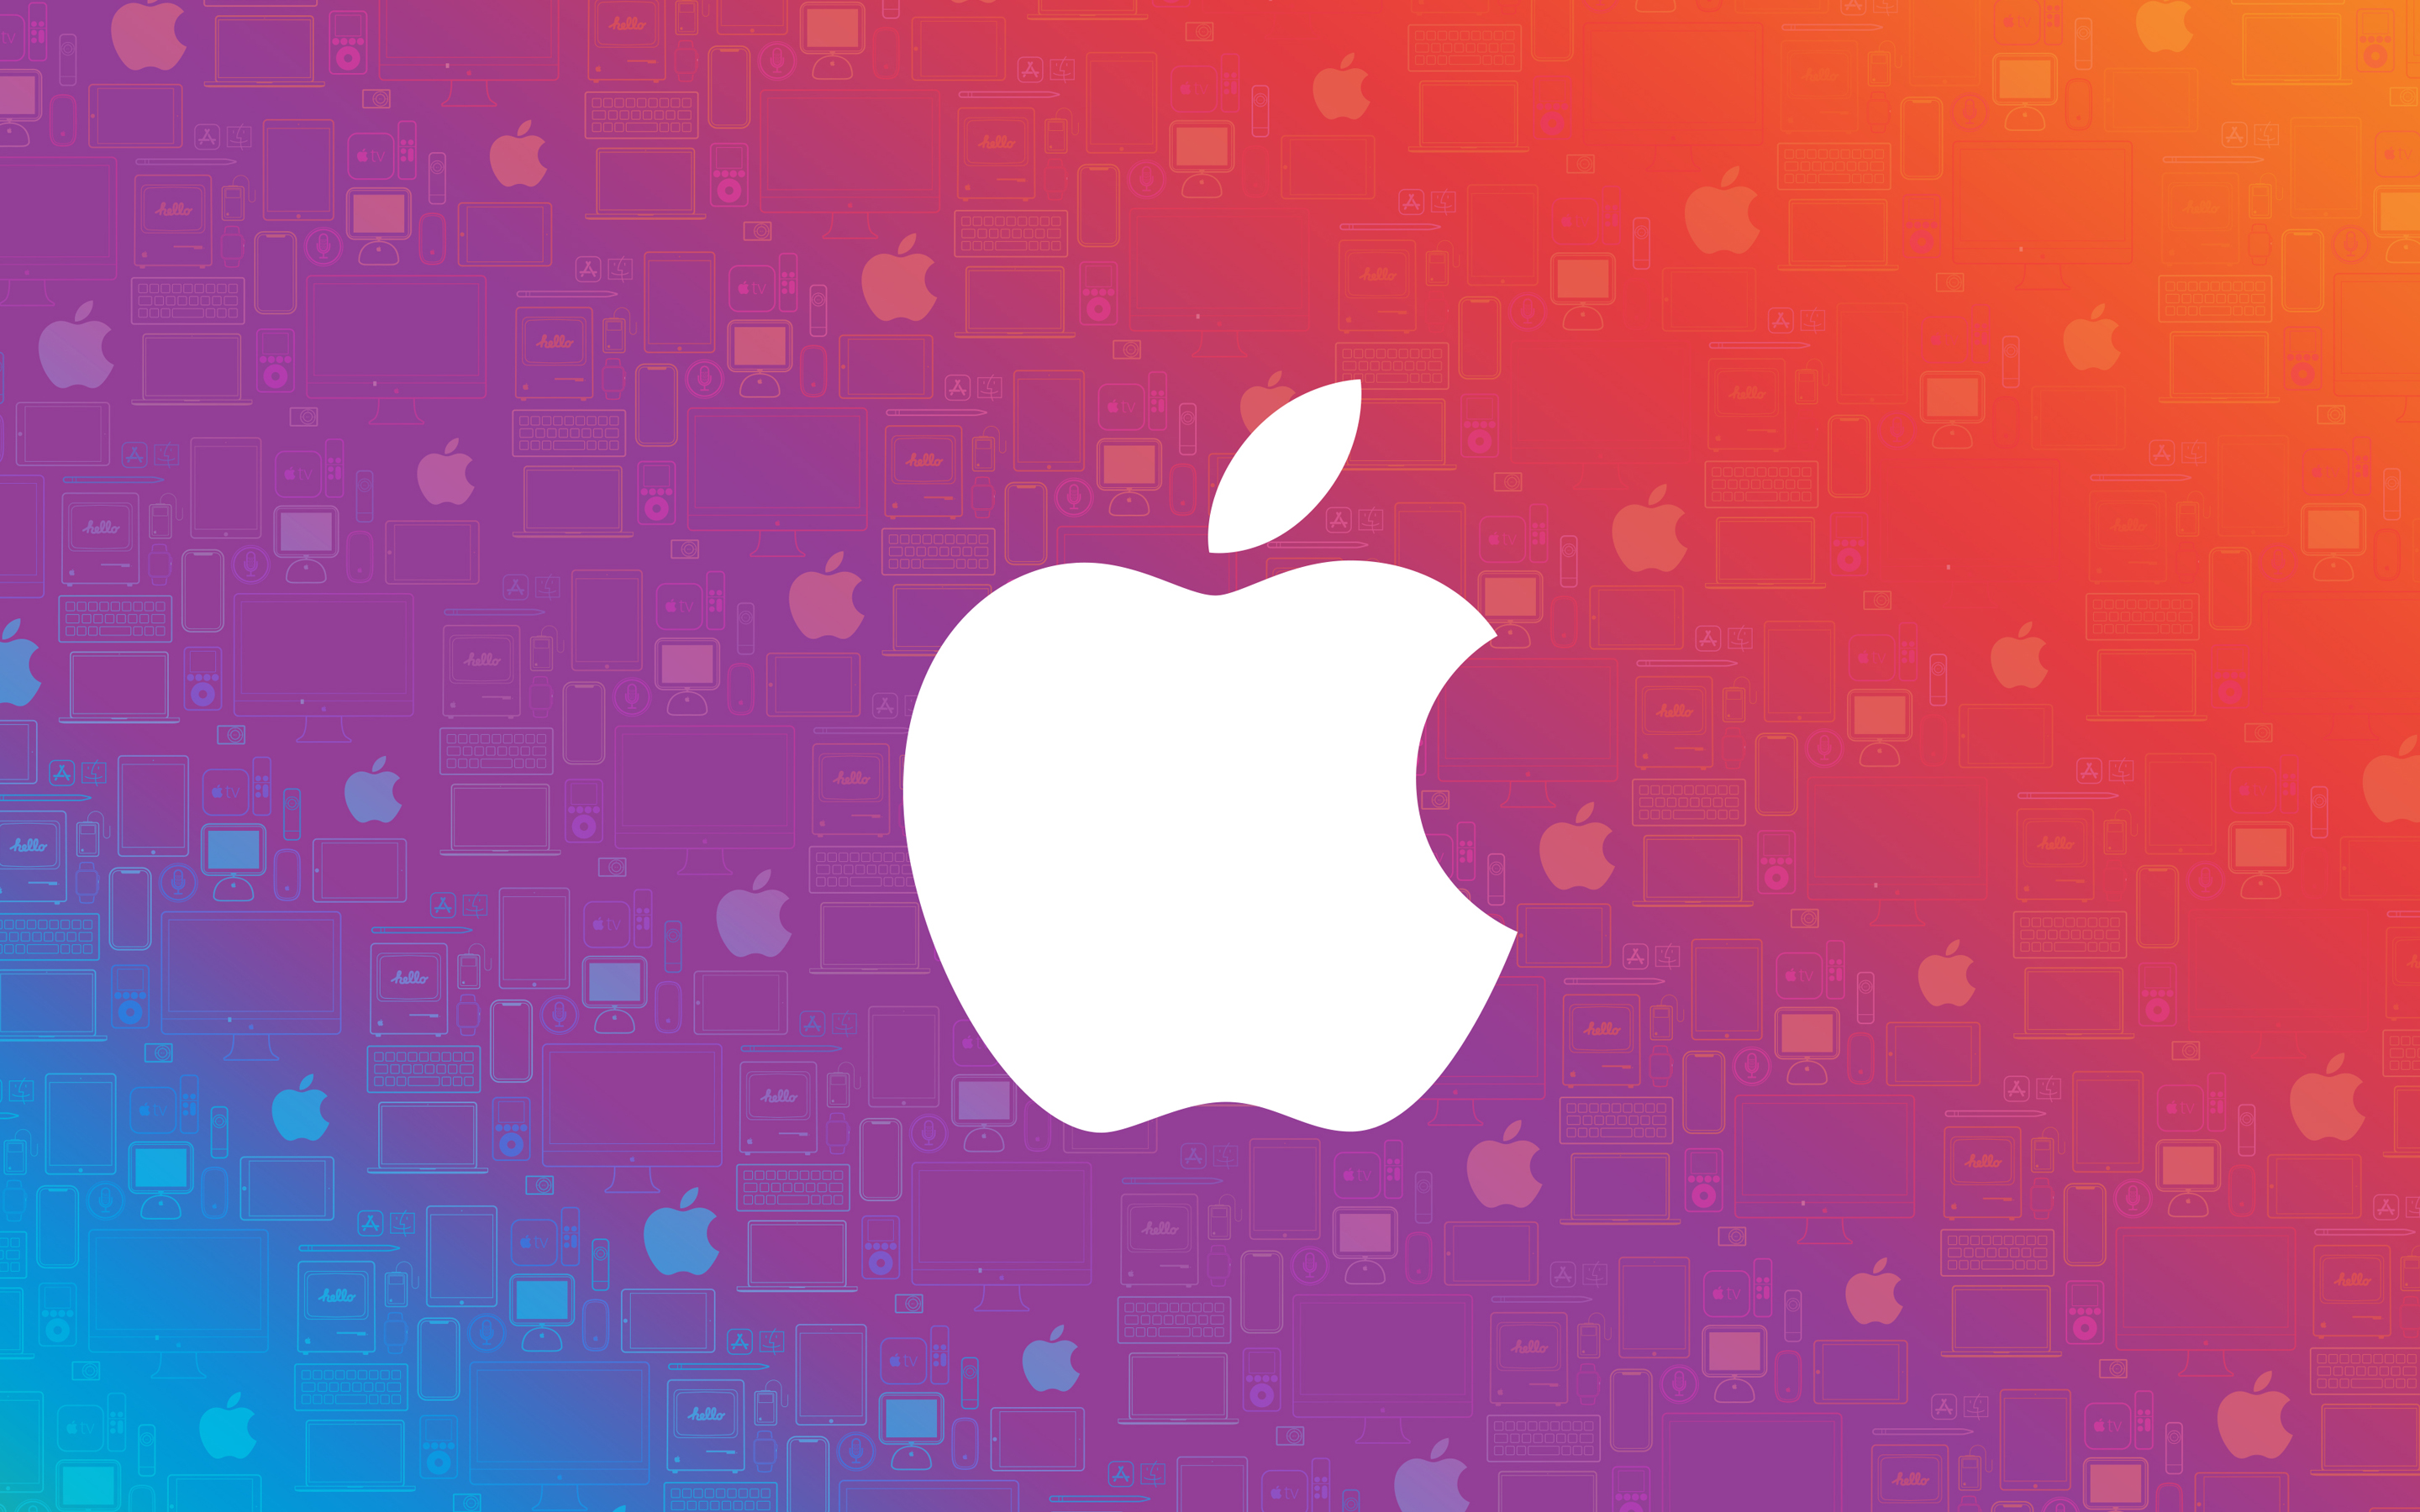 Apple 4K, hd walepaper, free wallpaper